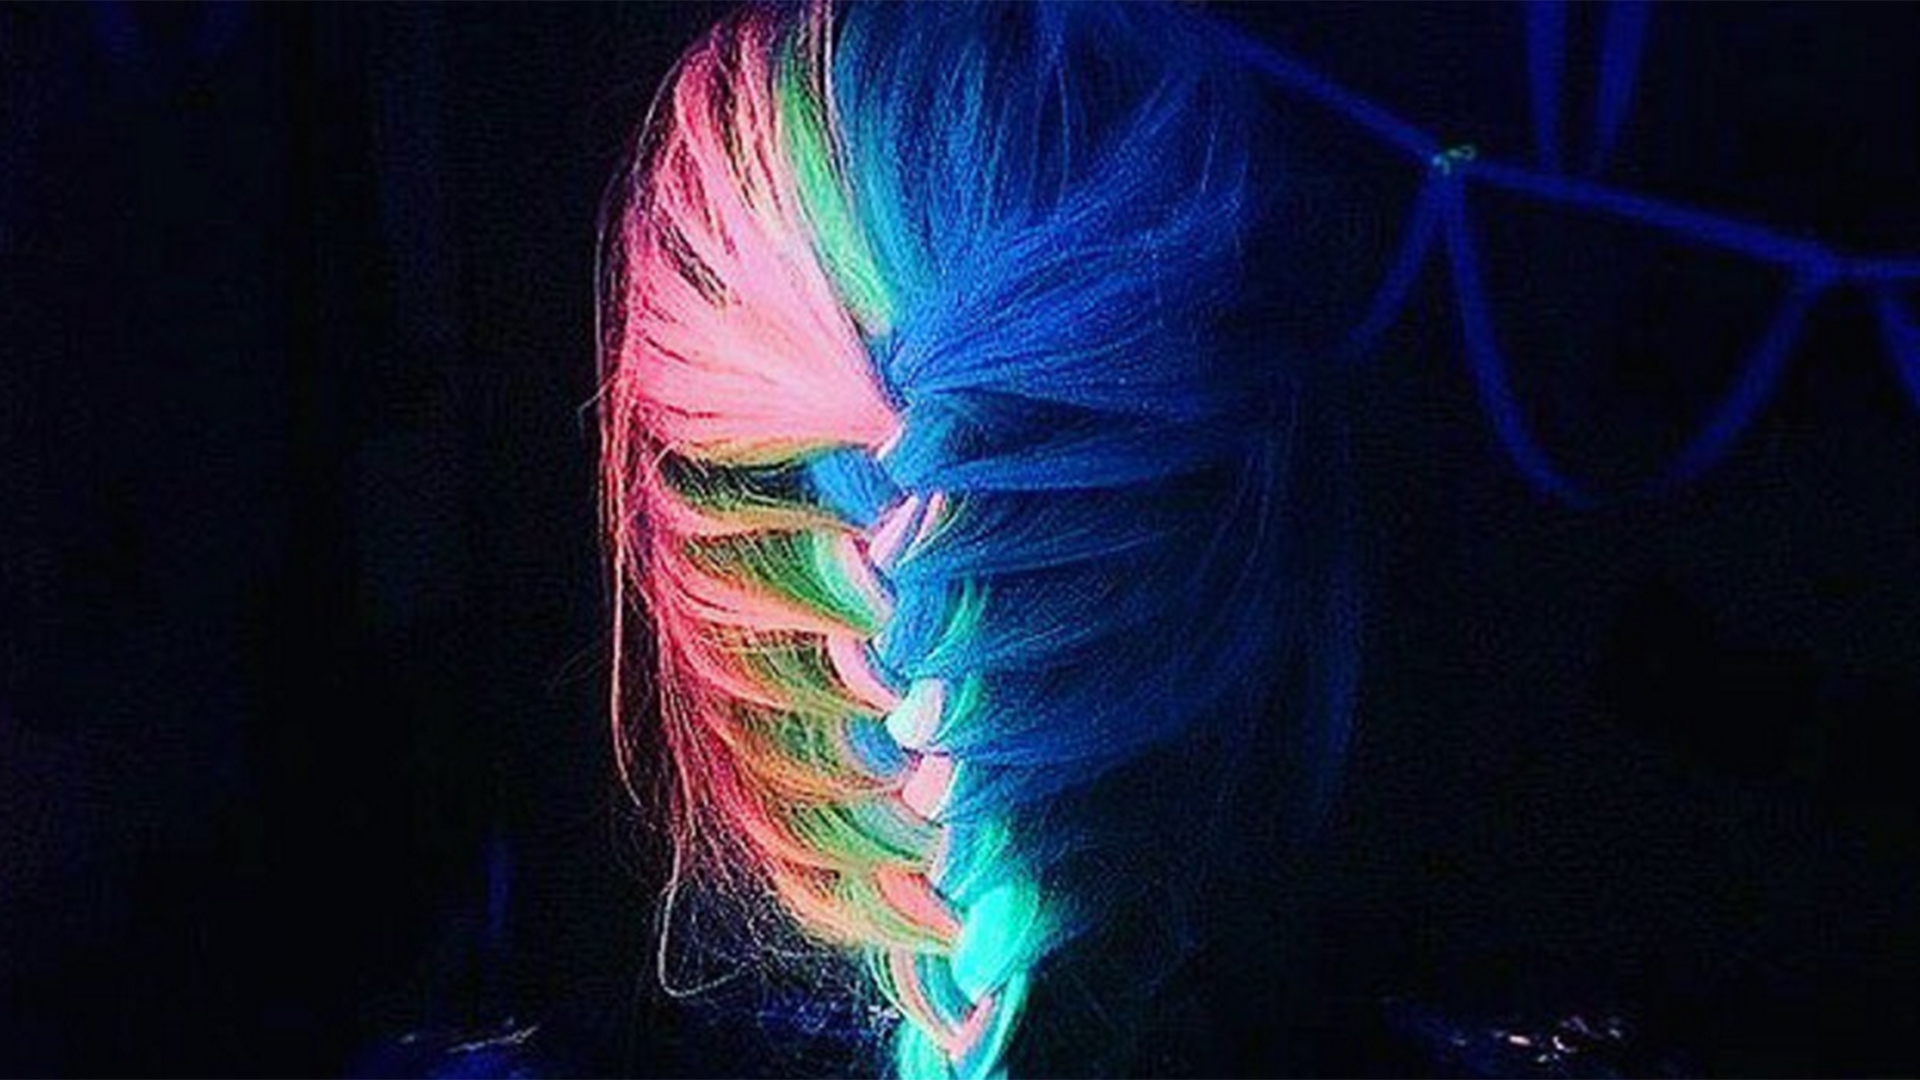 Glow-in-the-dark Rainbow Hair Is The Latest Wacky Trend